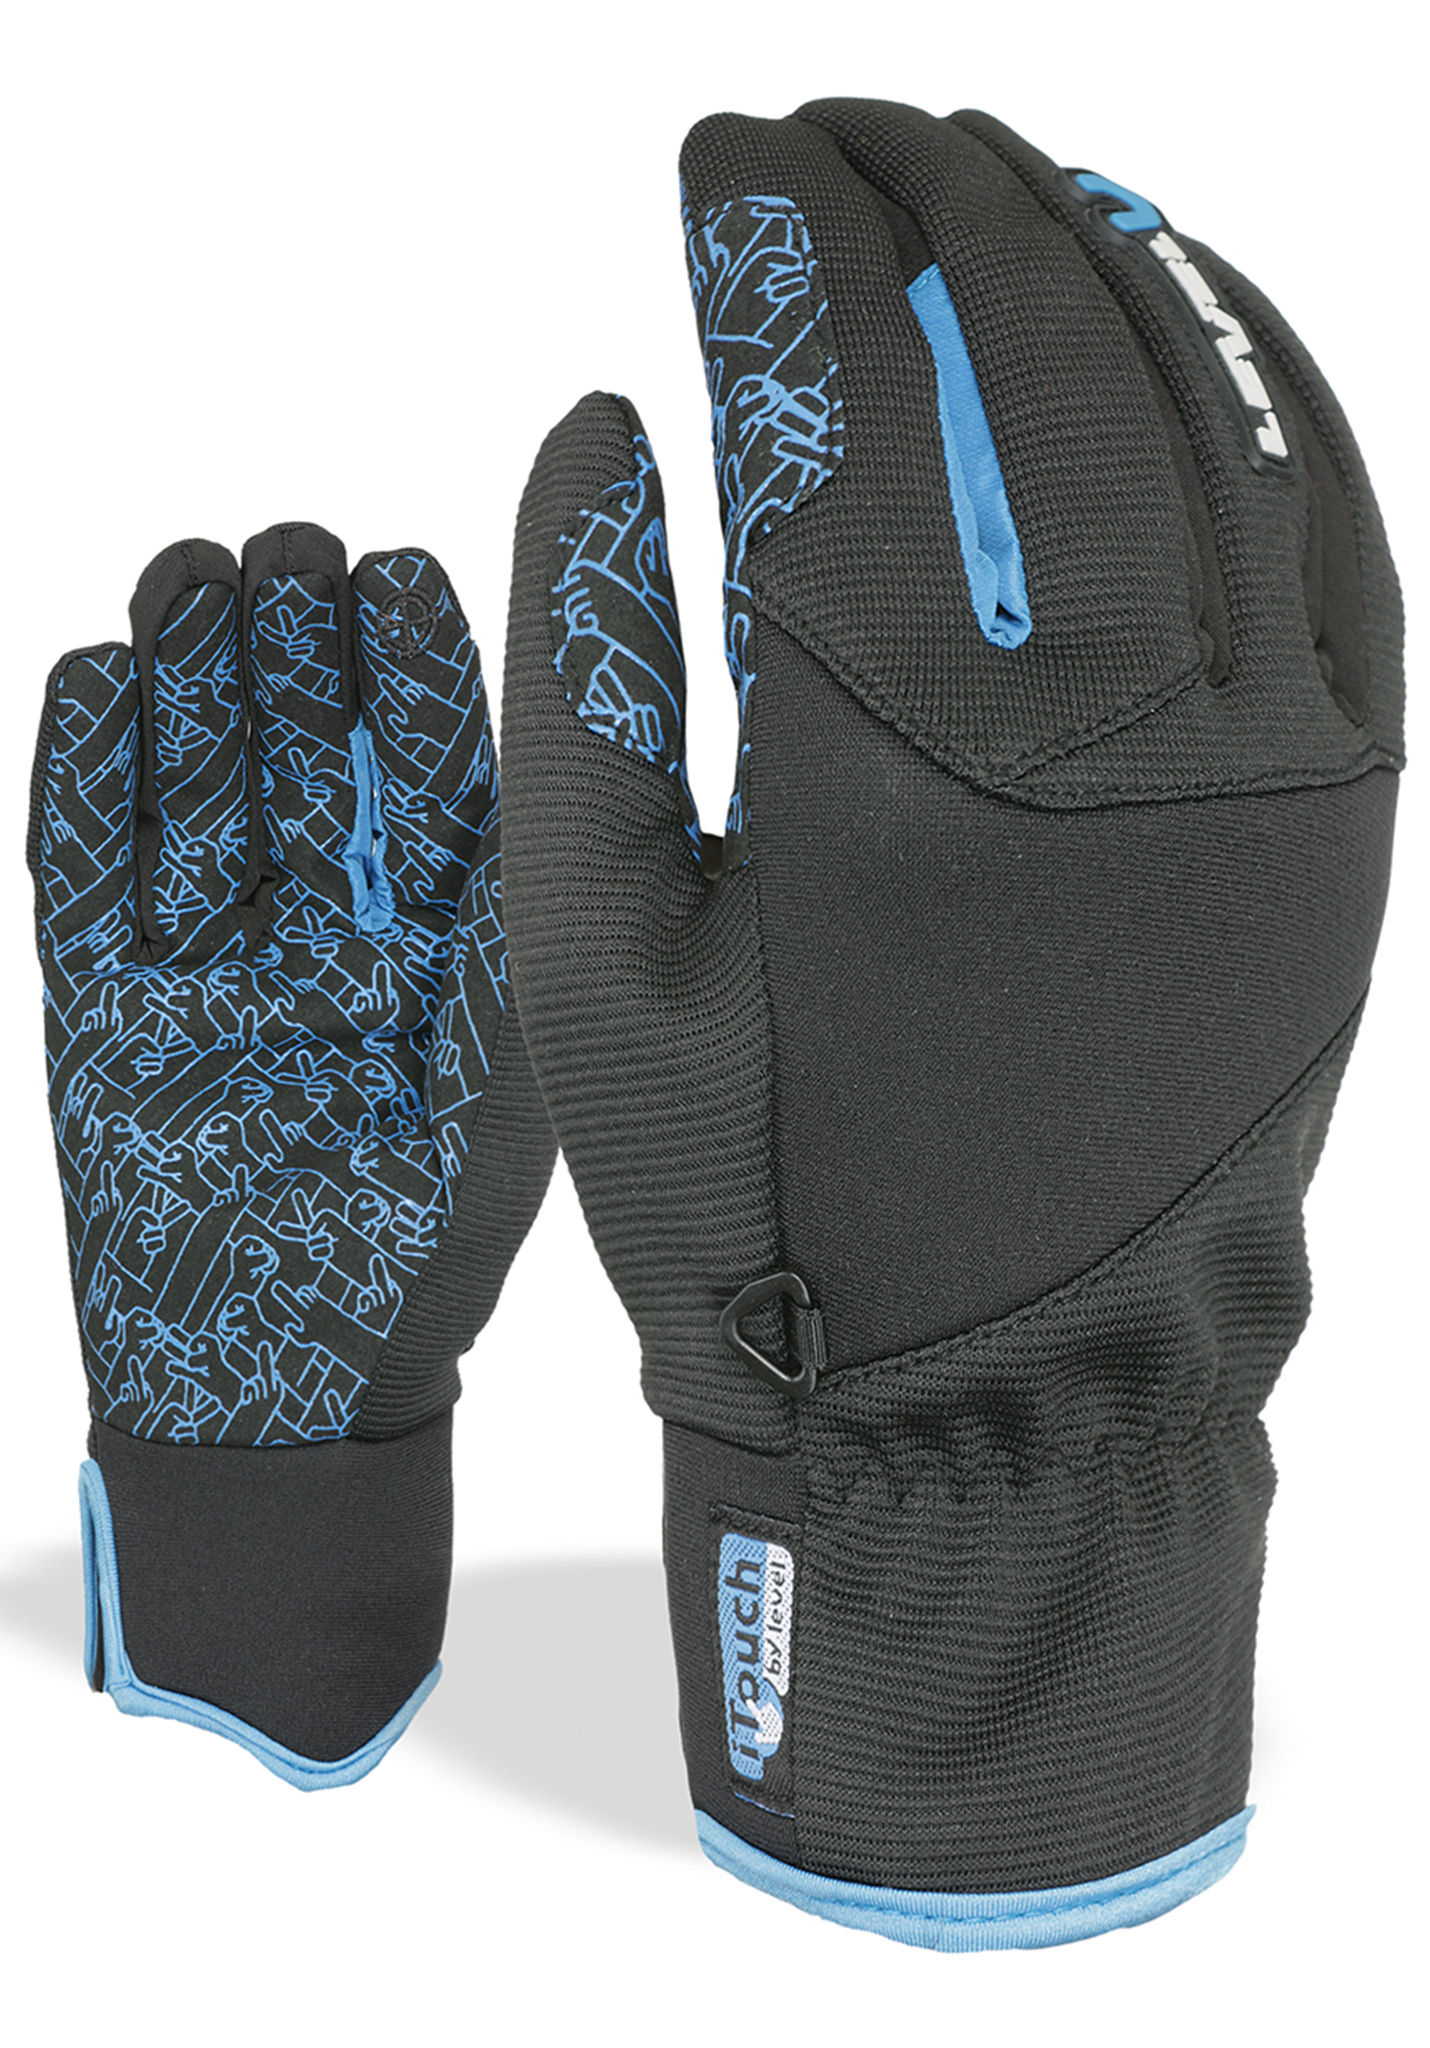 Nitro snowboard gloves